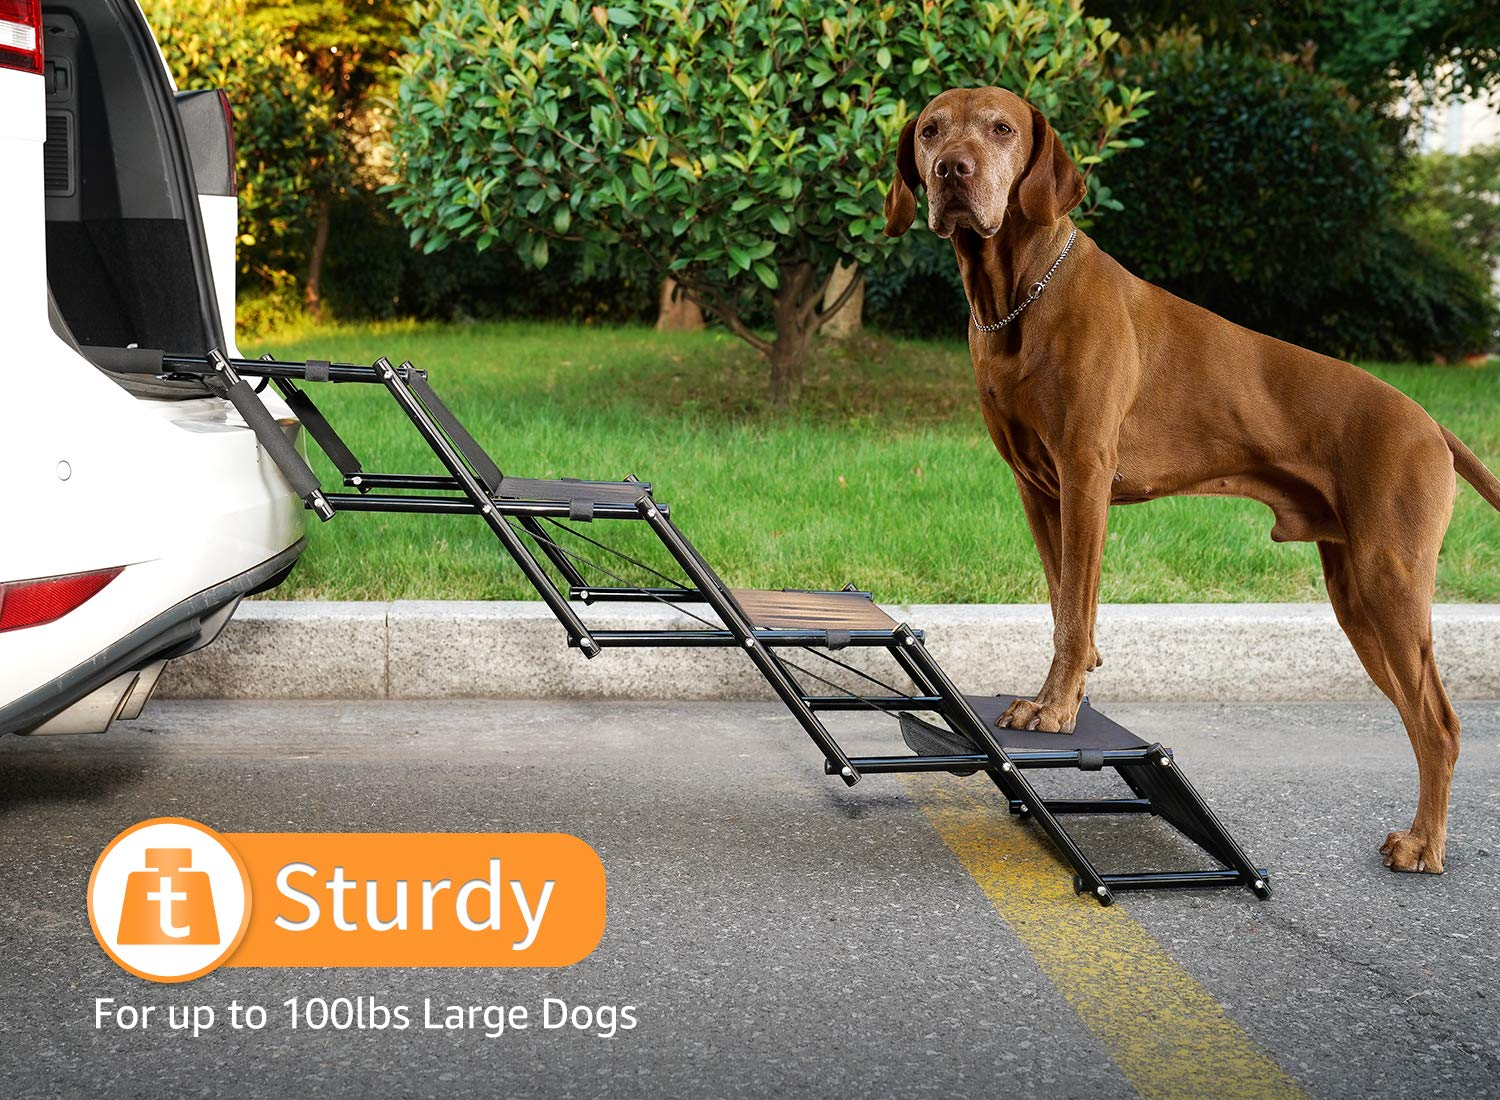 Dog Car Step Stairs Foldable - SUKI&SAMI Metal Frame Folding Dog Ramp for Car,Lightweight Portable Large Dog Ladder,for Dogs and Cats,SUVs and Trucks,Couch and Bed,Protect Pets' Joint and Knee by SUKI&SAMI